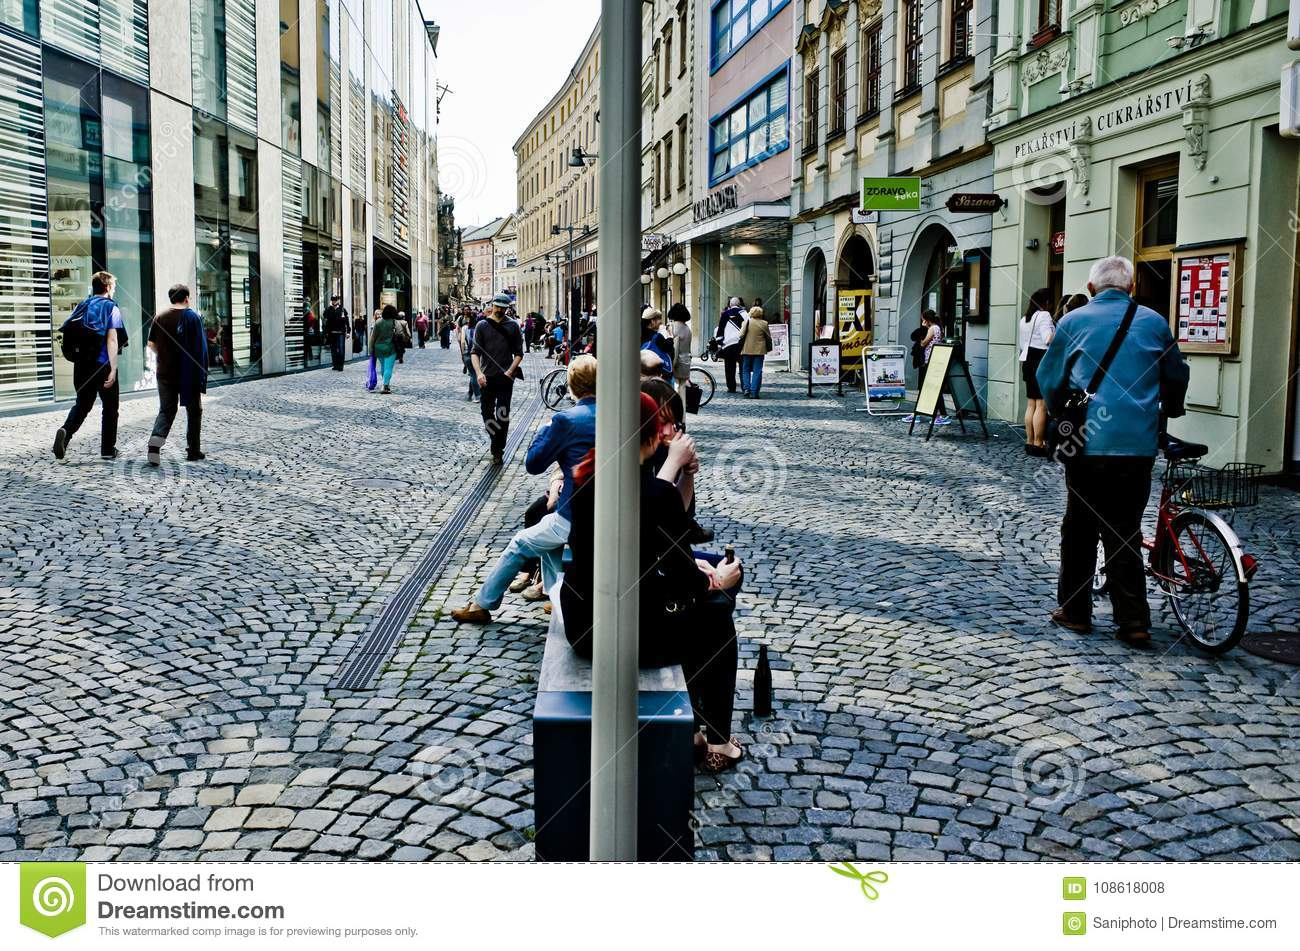 Street of Olomouc busy with people